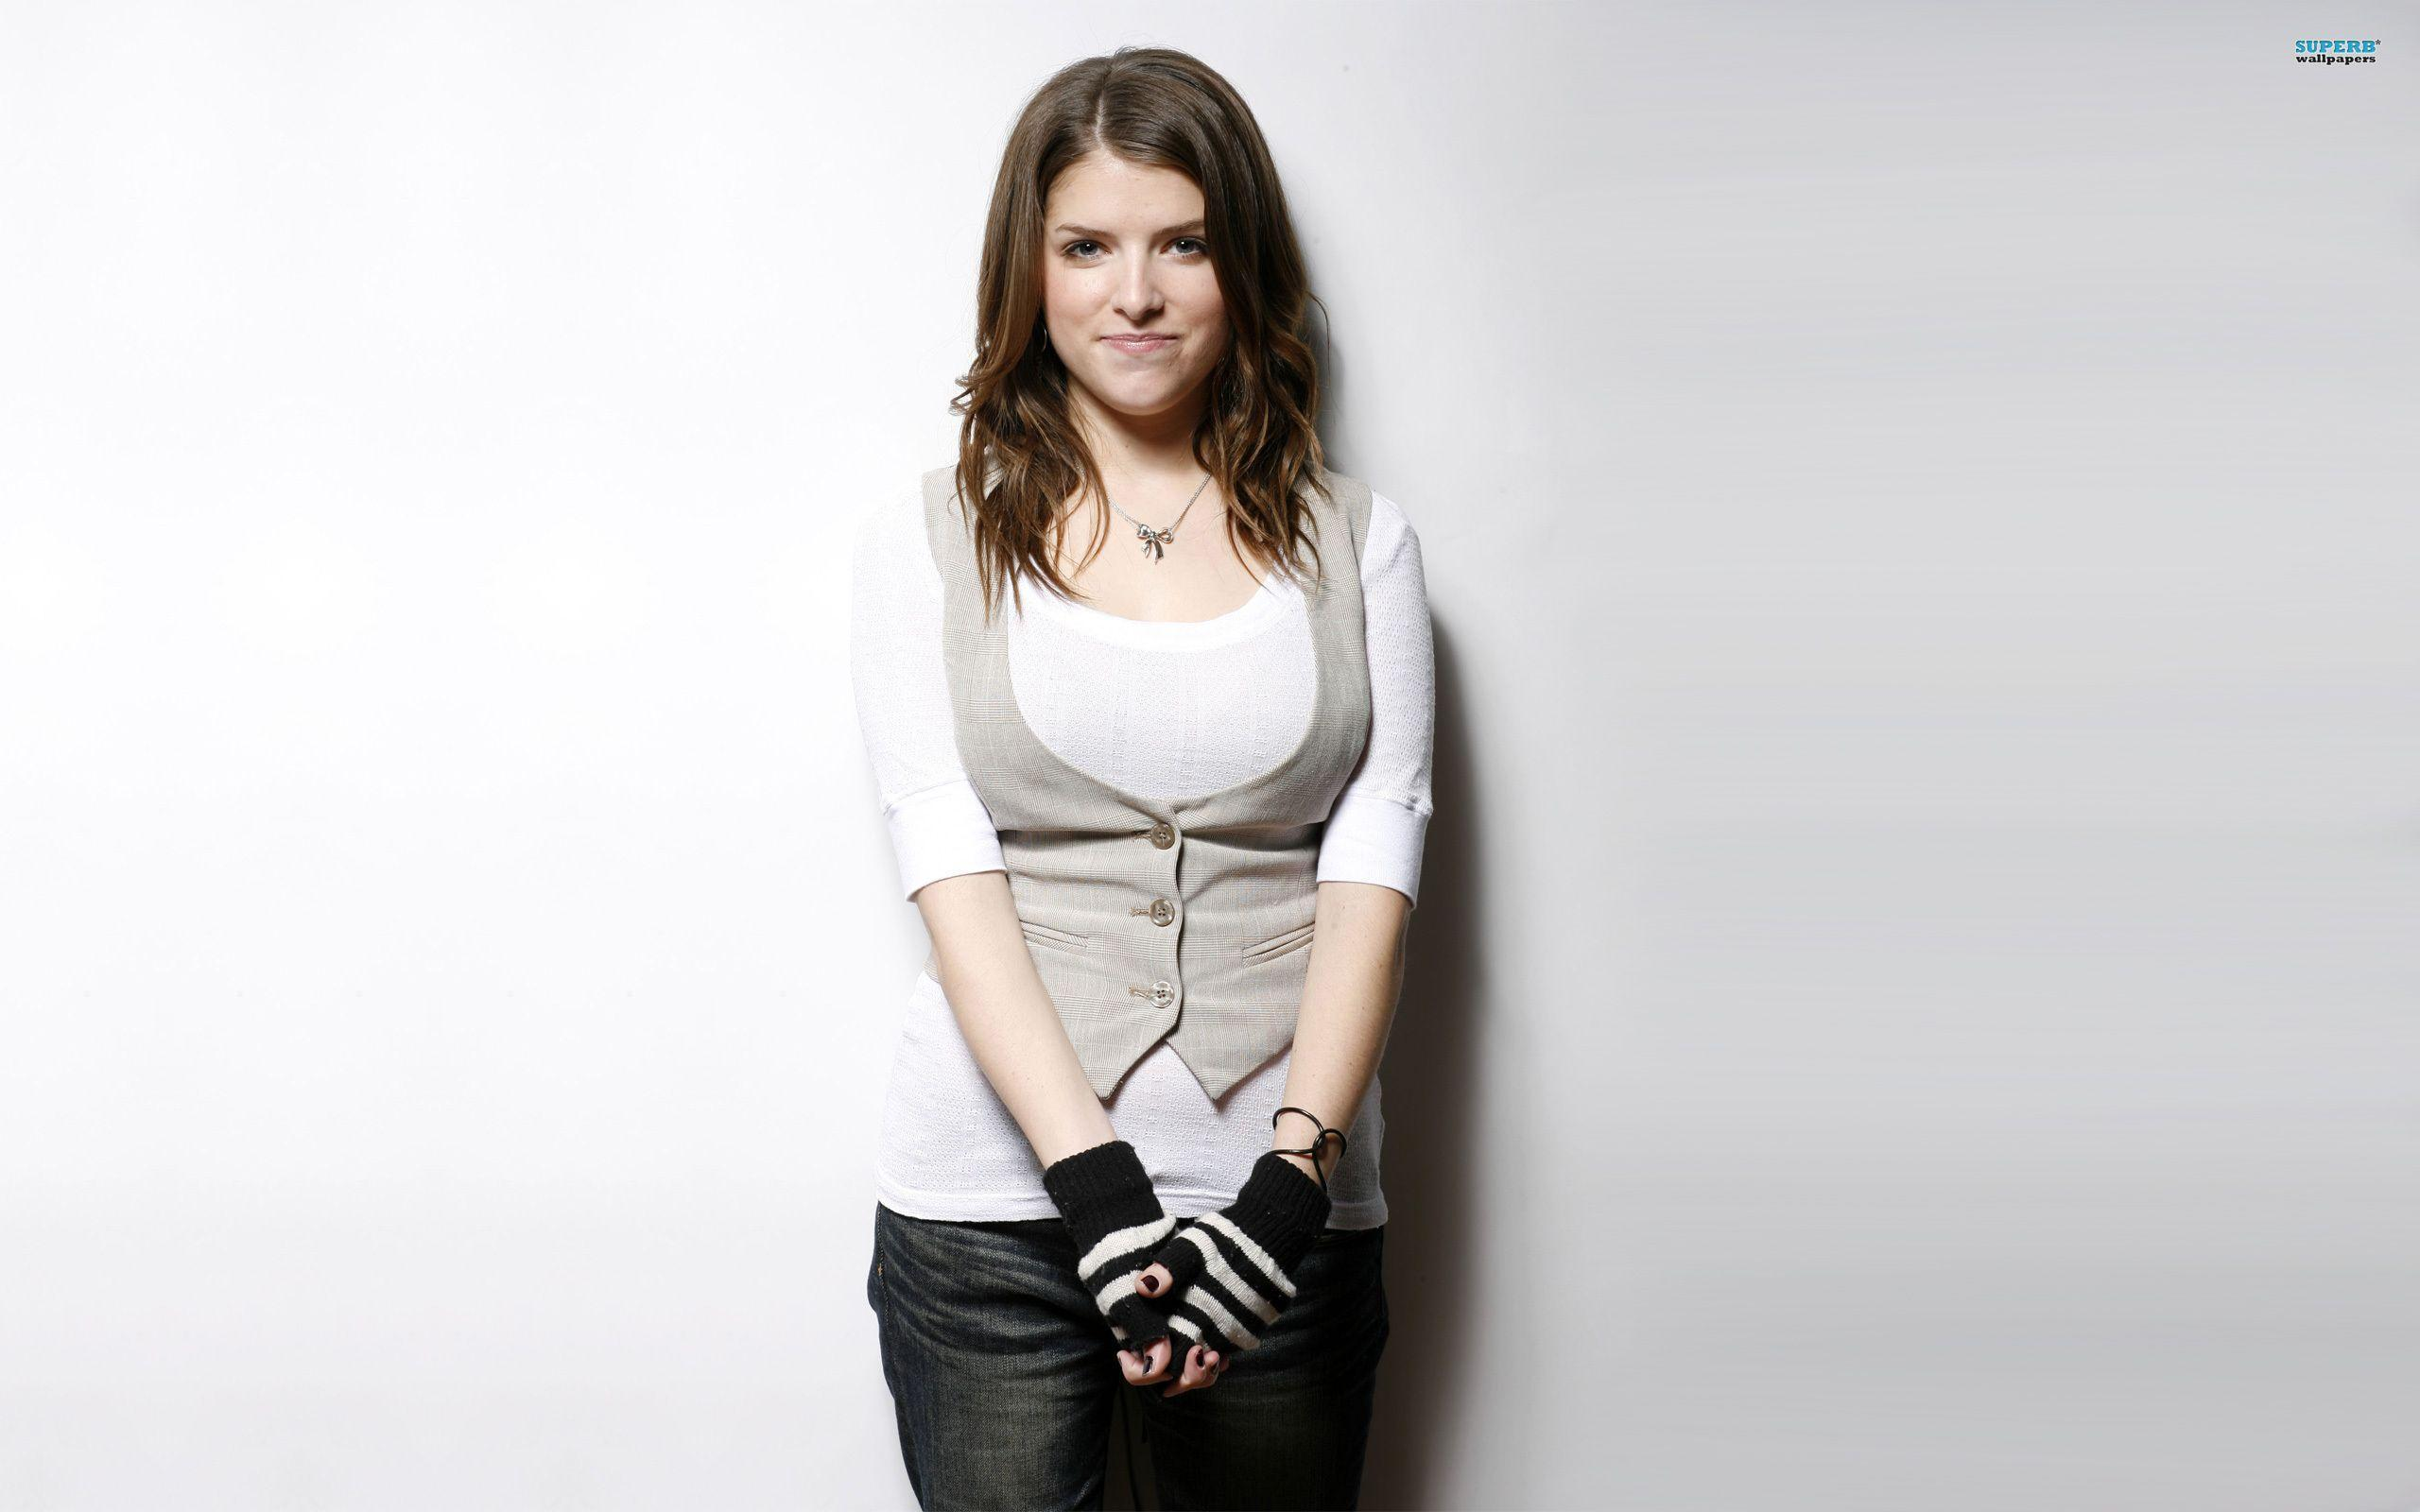 Anna Kendrick Wallpapers High Quality